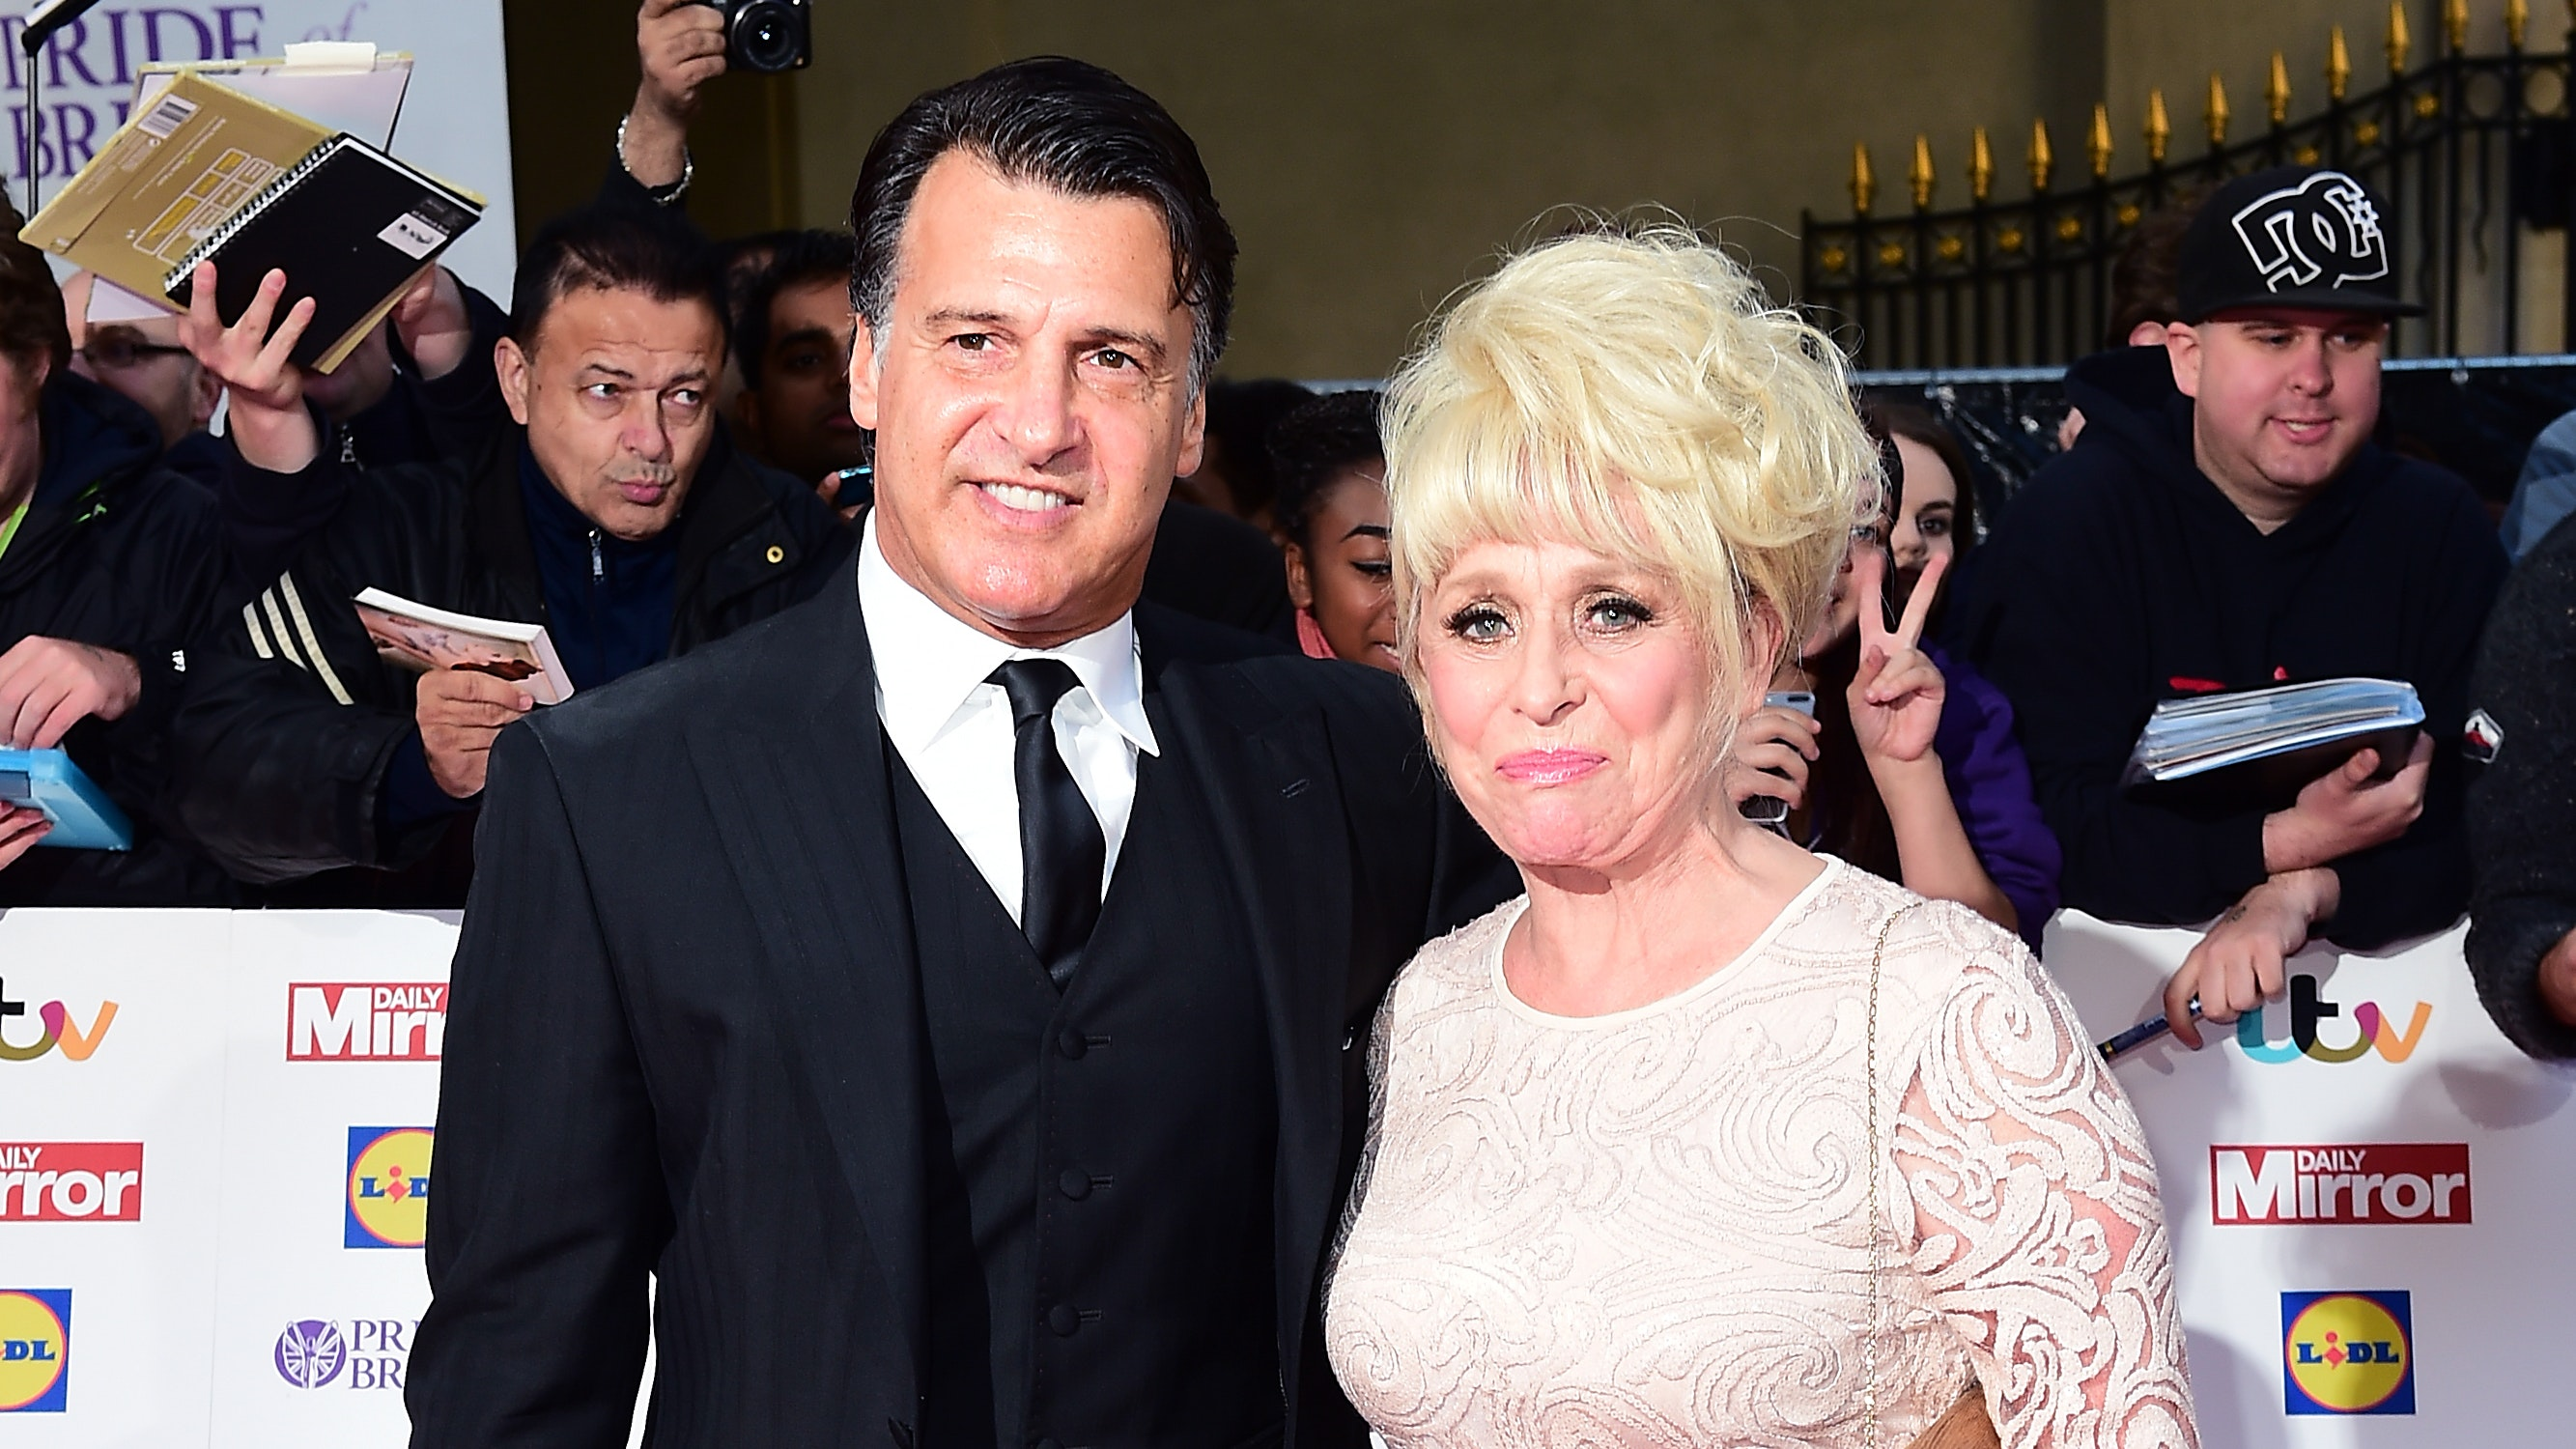 773eb4f5839a Dame Barbara Windsor is becoming more scared, says husband | BT